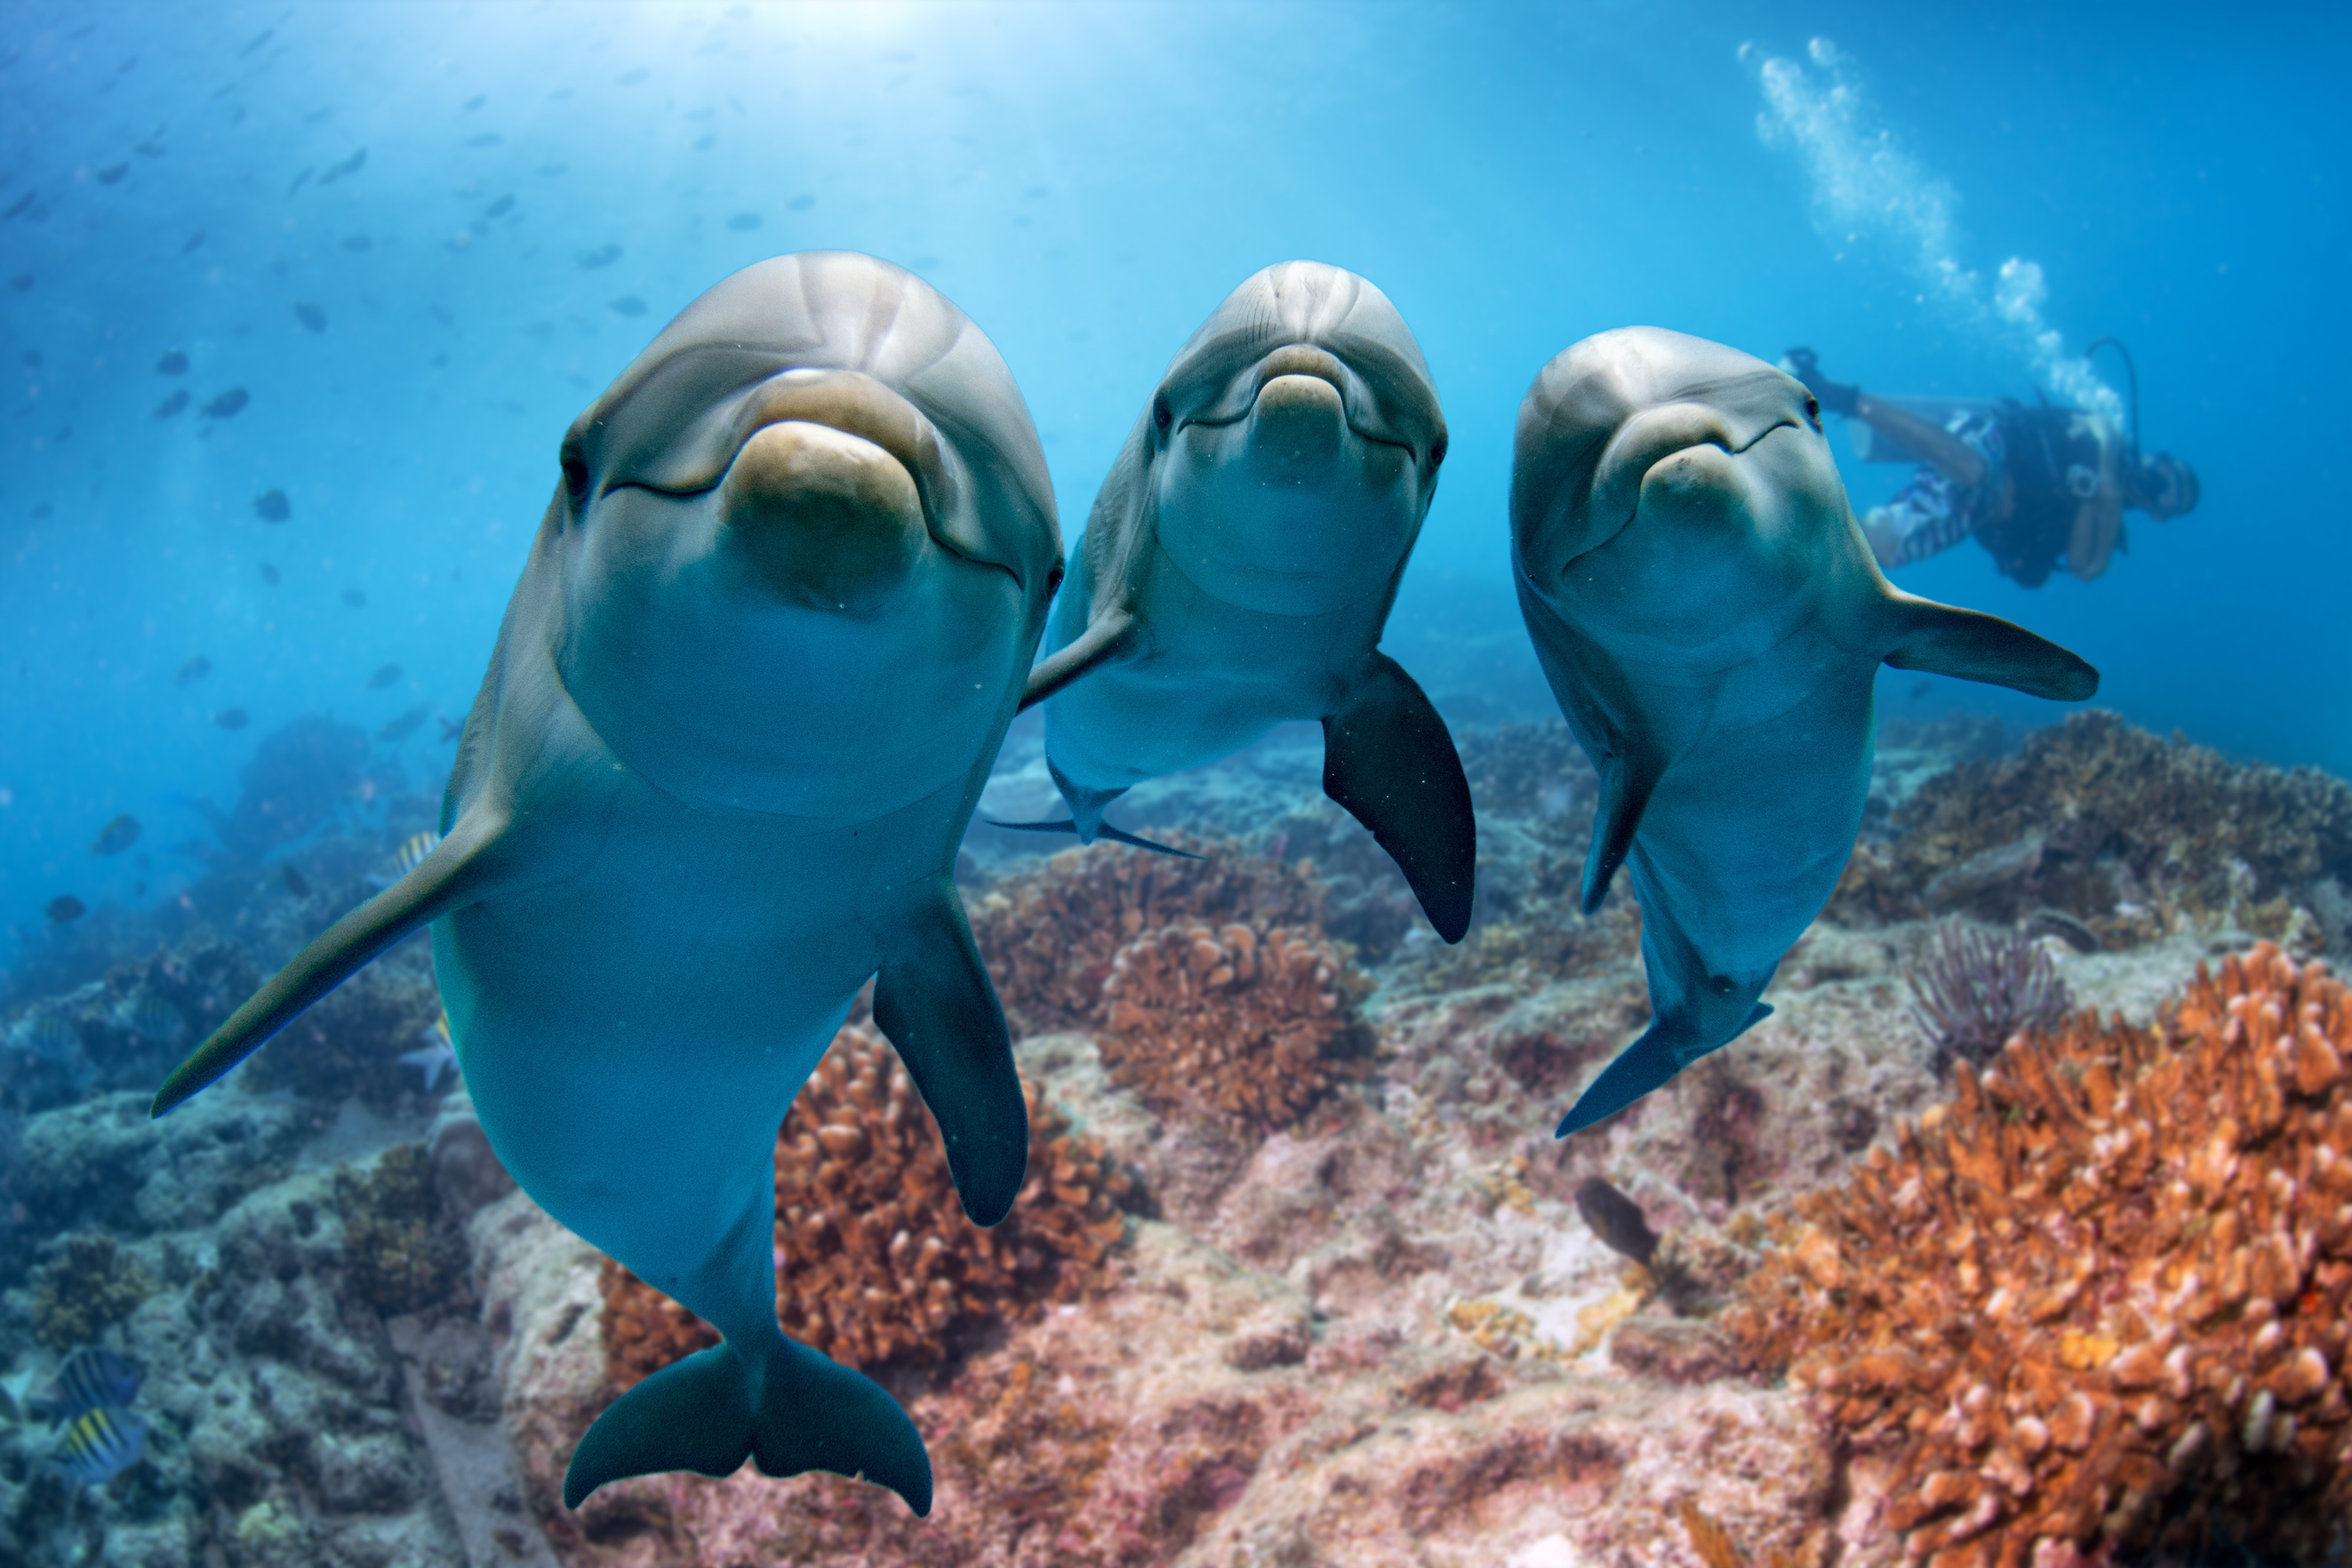 A new study revealed that immune system changes in wild dolphins were brought on by chemicals in the ocean.